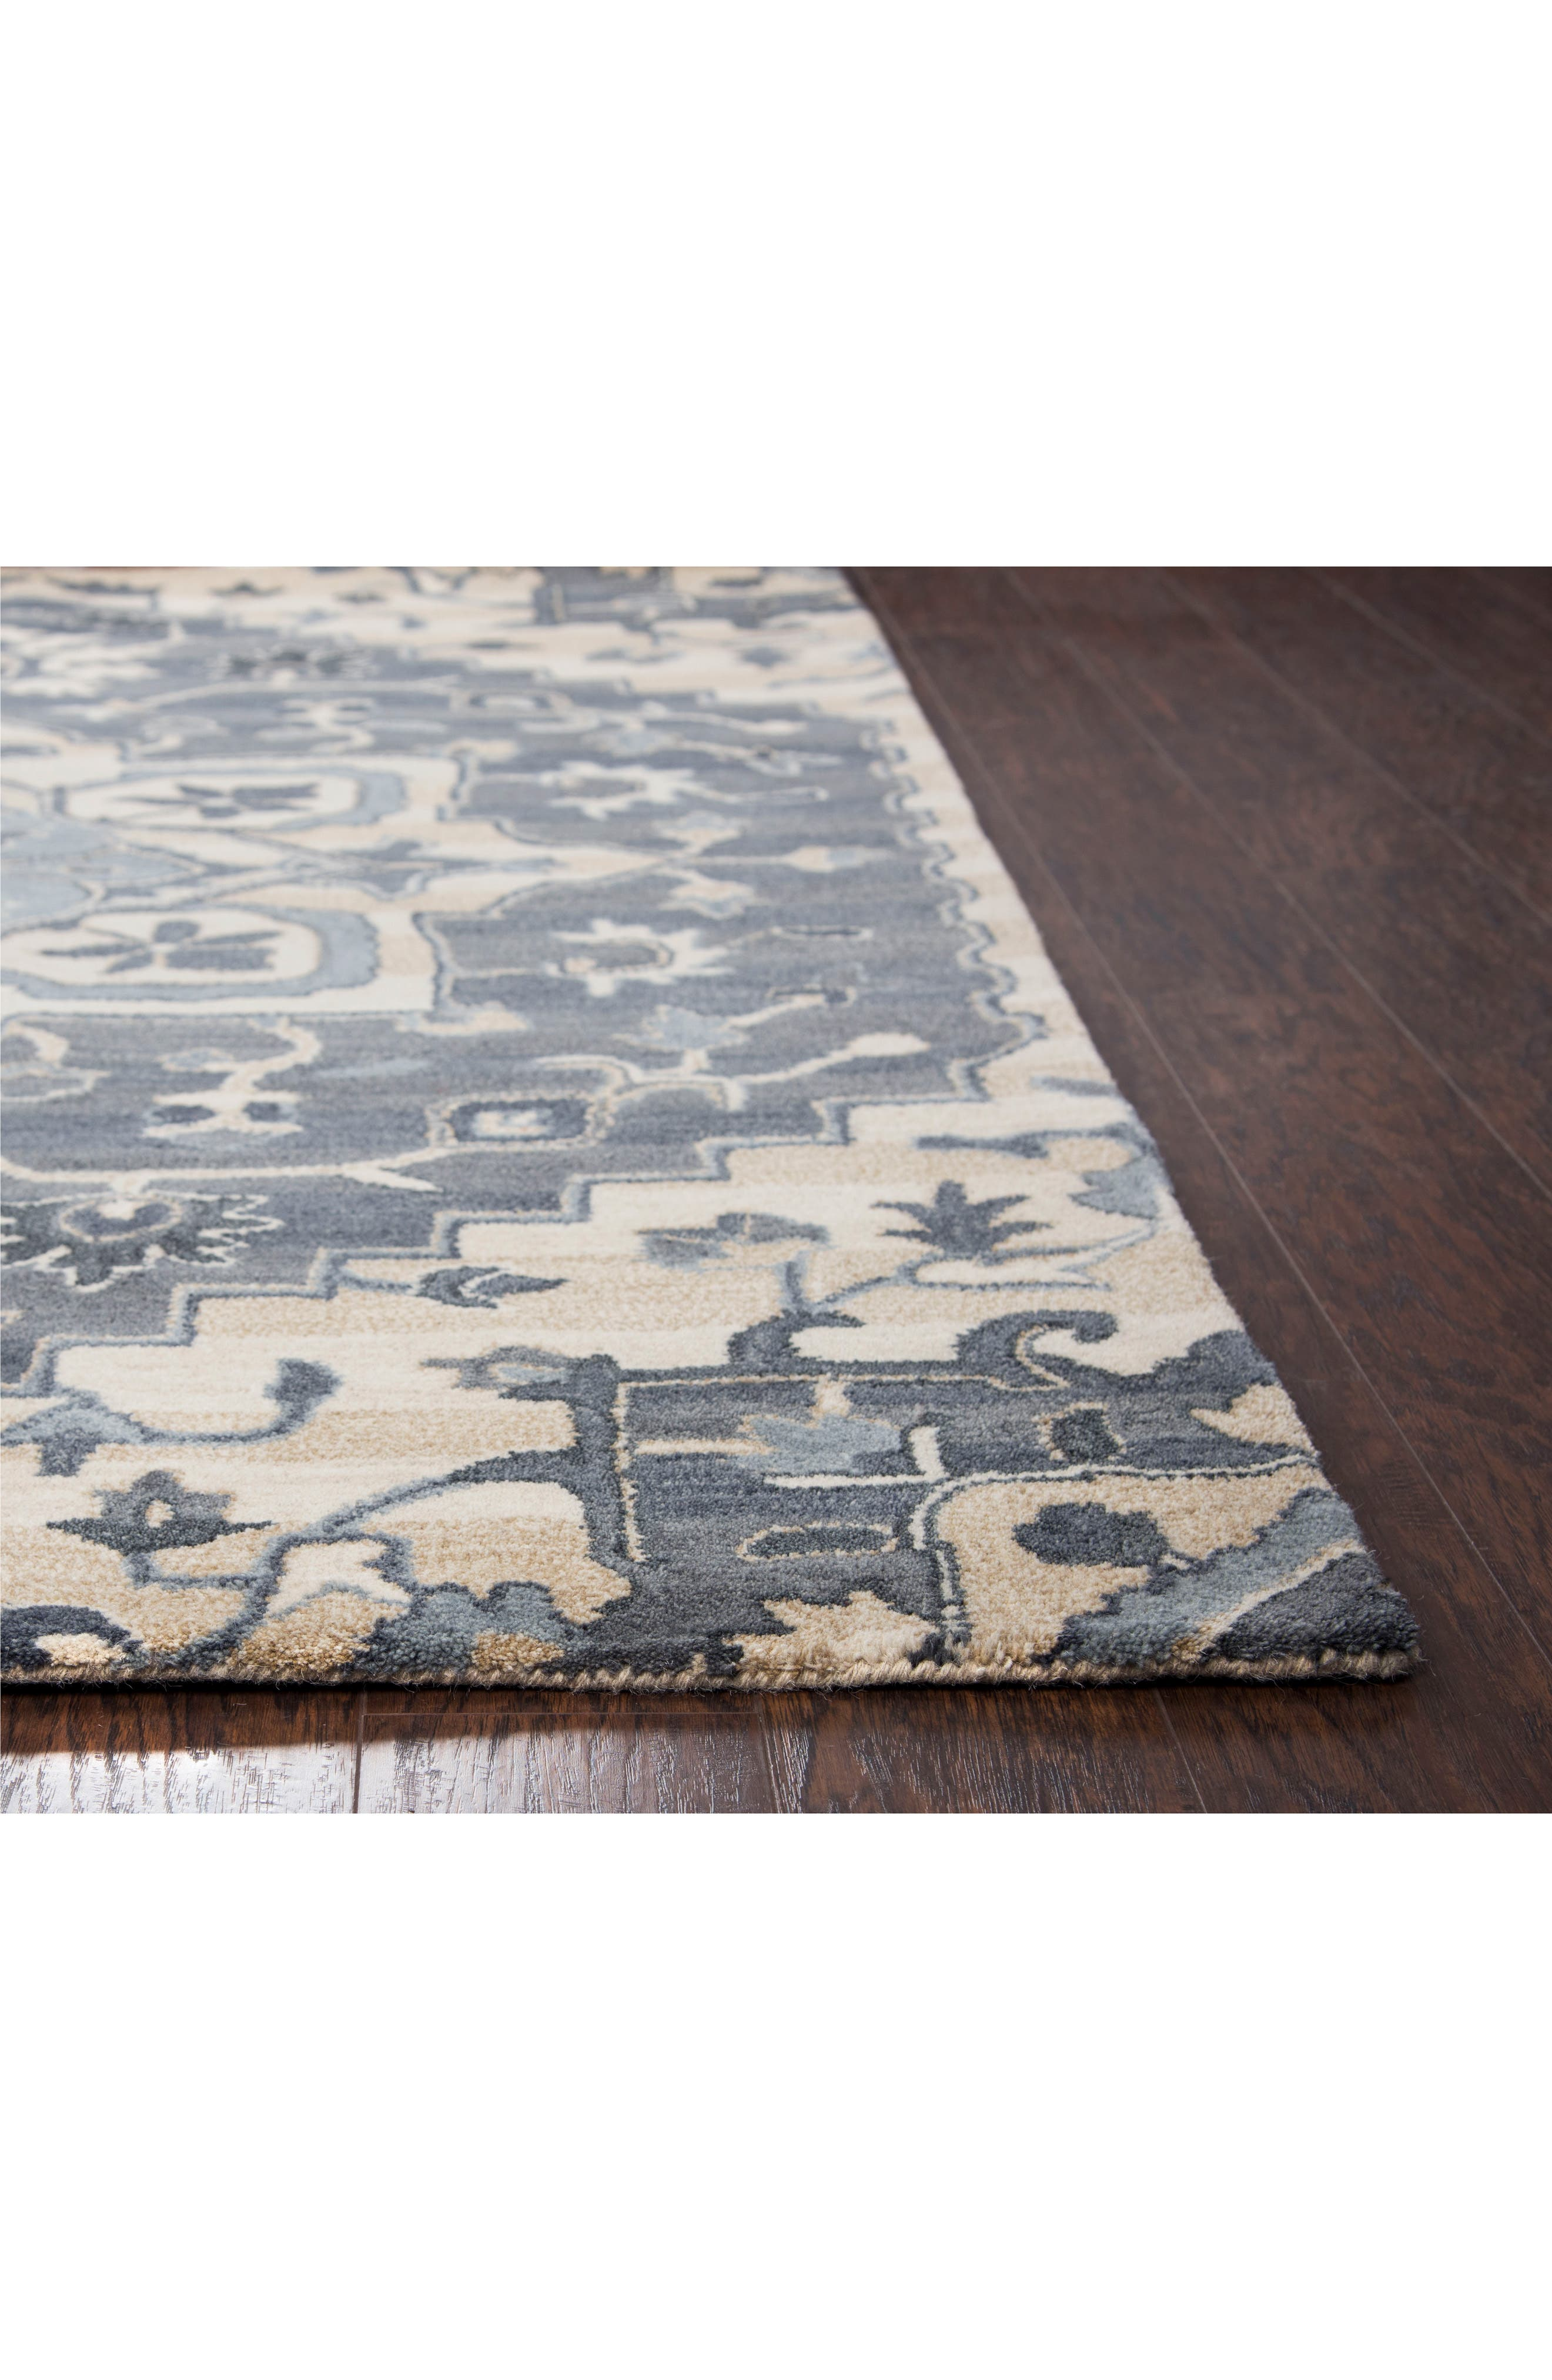 Veronica Hand Tufted Wool Rug,                             Alternate thumbnail 2, color,                             Blue